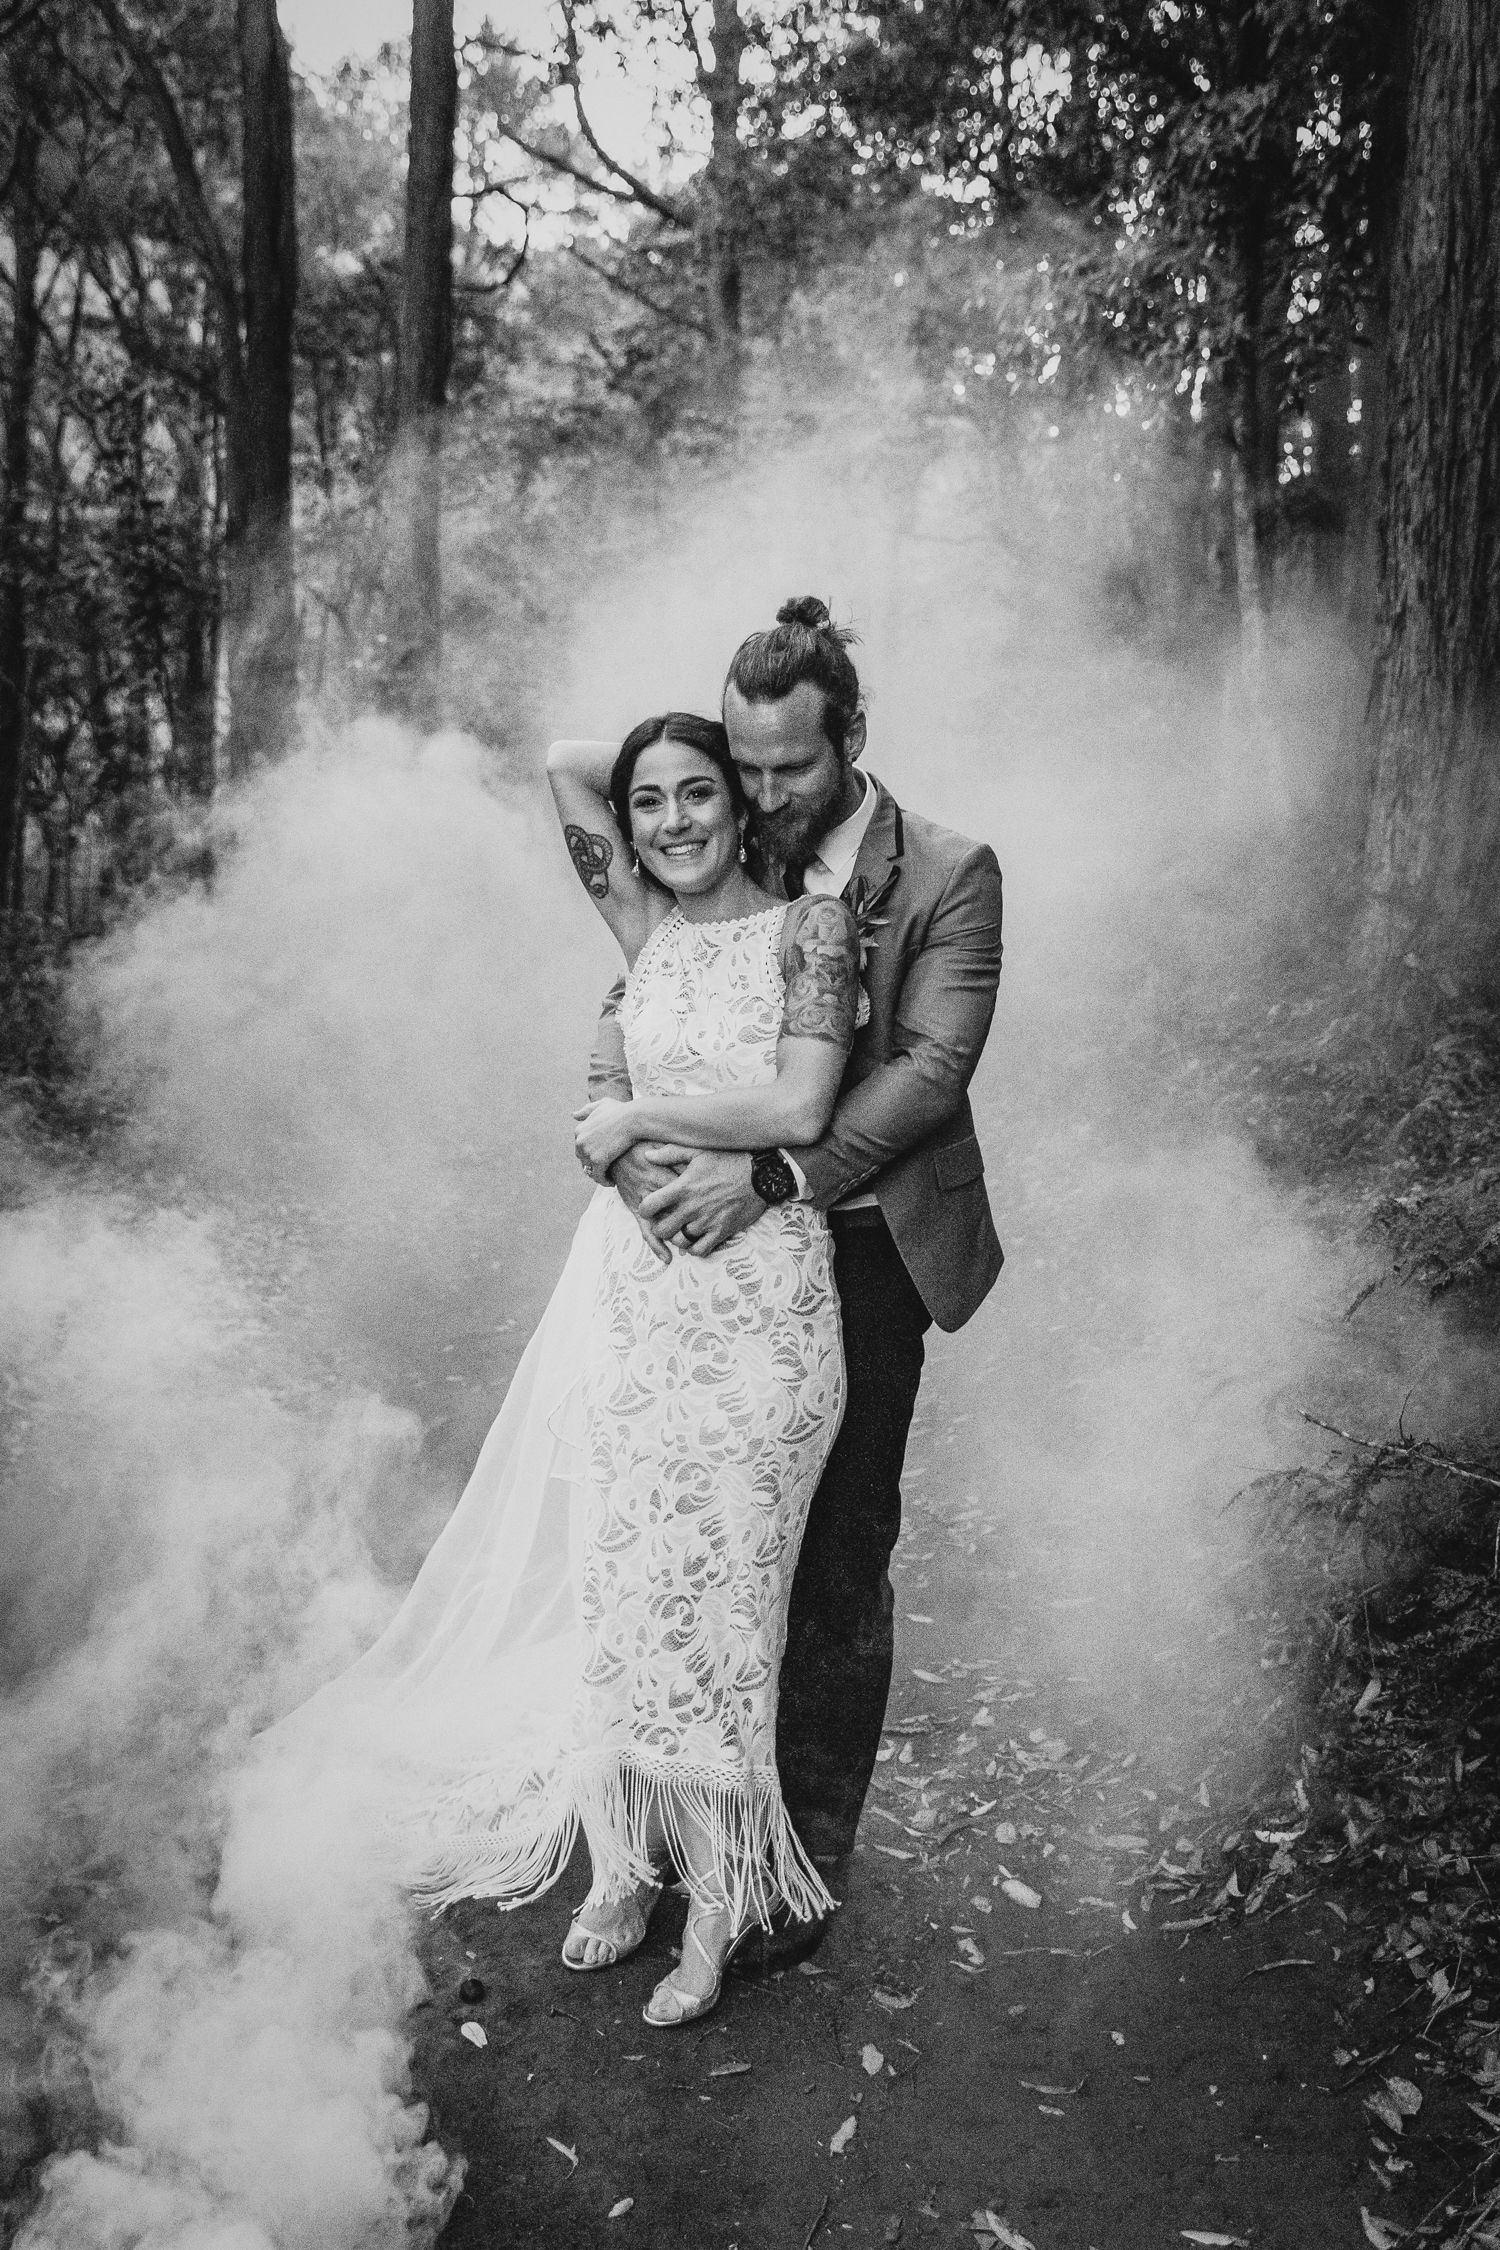 Des & Diarna Lonely Hunter Weddings // Southern